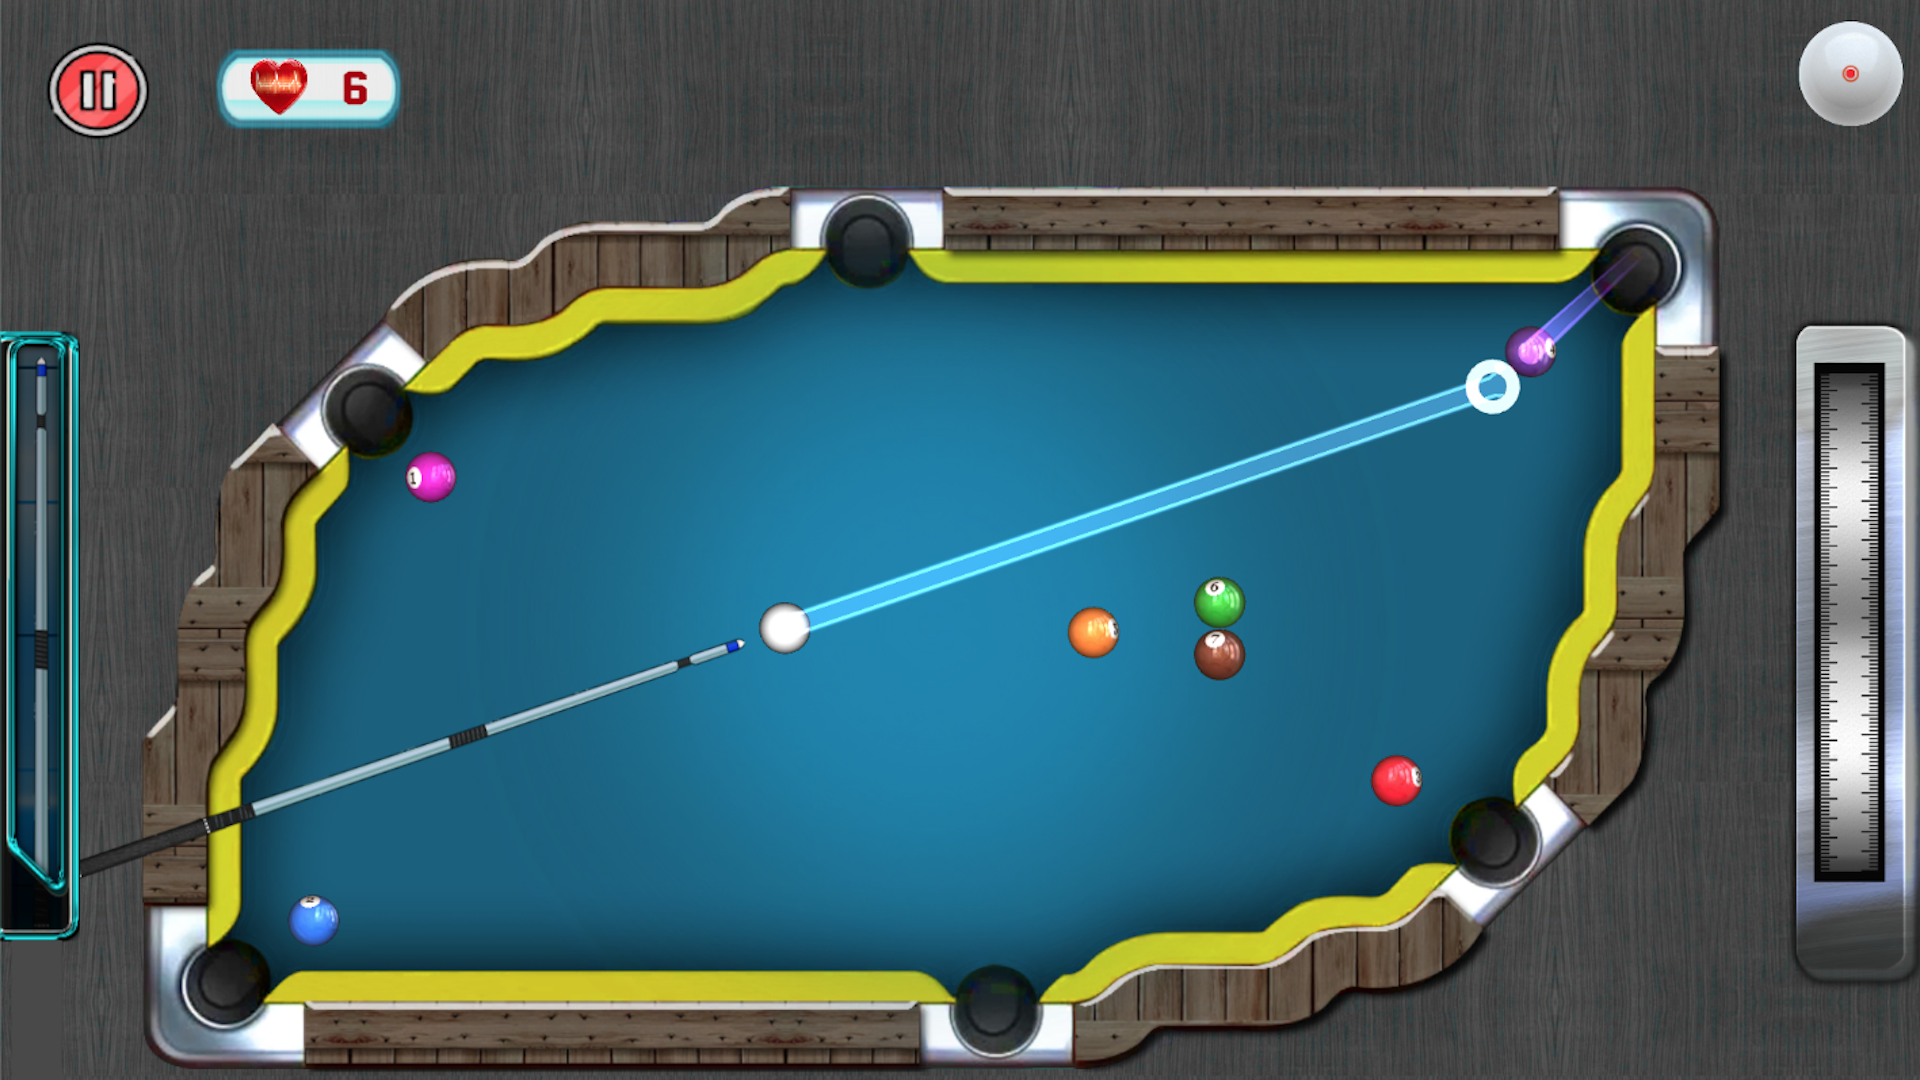 Pool City - 8 Ball Billiards Pro Game Free (Offline): Amazon.es ...